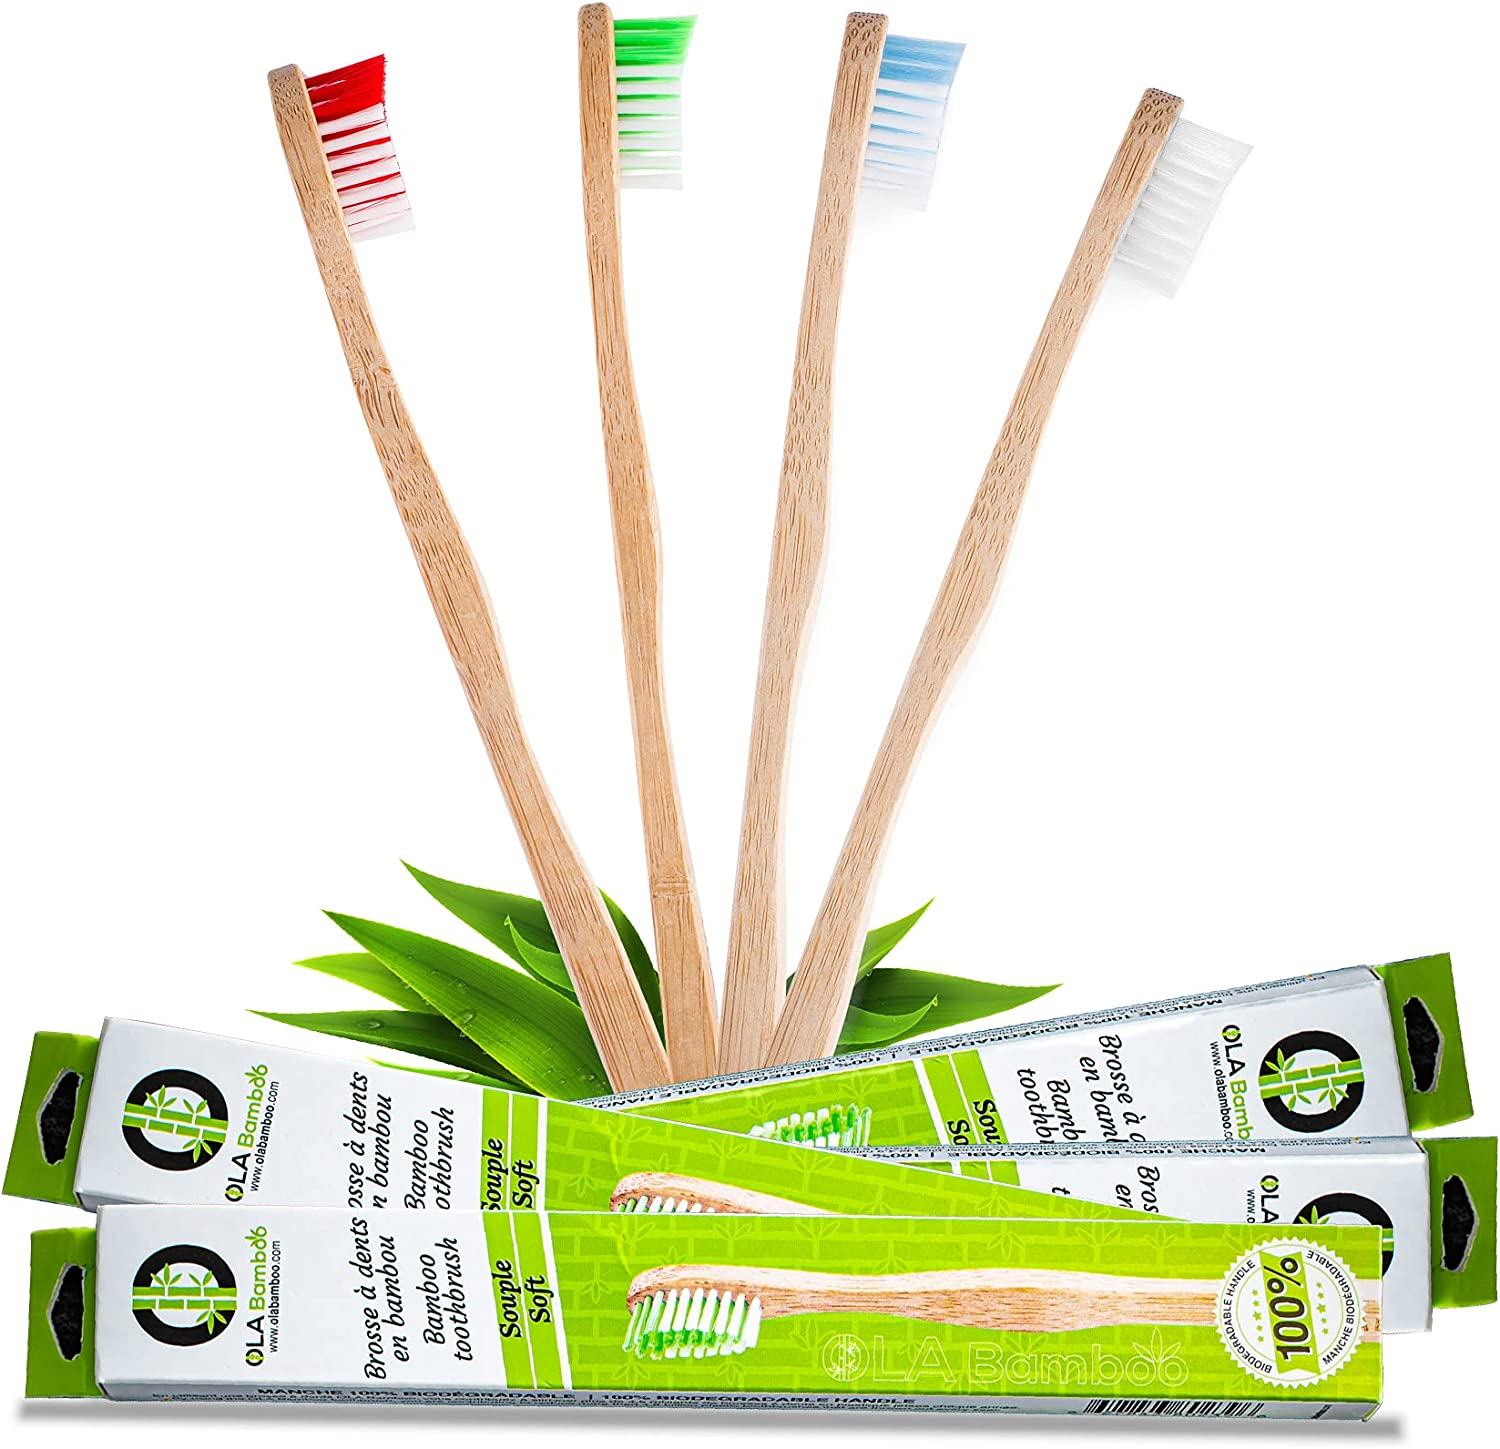 OLA Bamboo - Toothbrushes Pack of Soft 4 Bristle Ranking TOP4 Year-end annual account Toothb